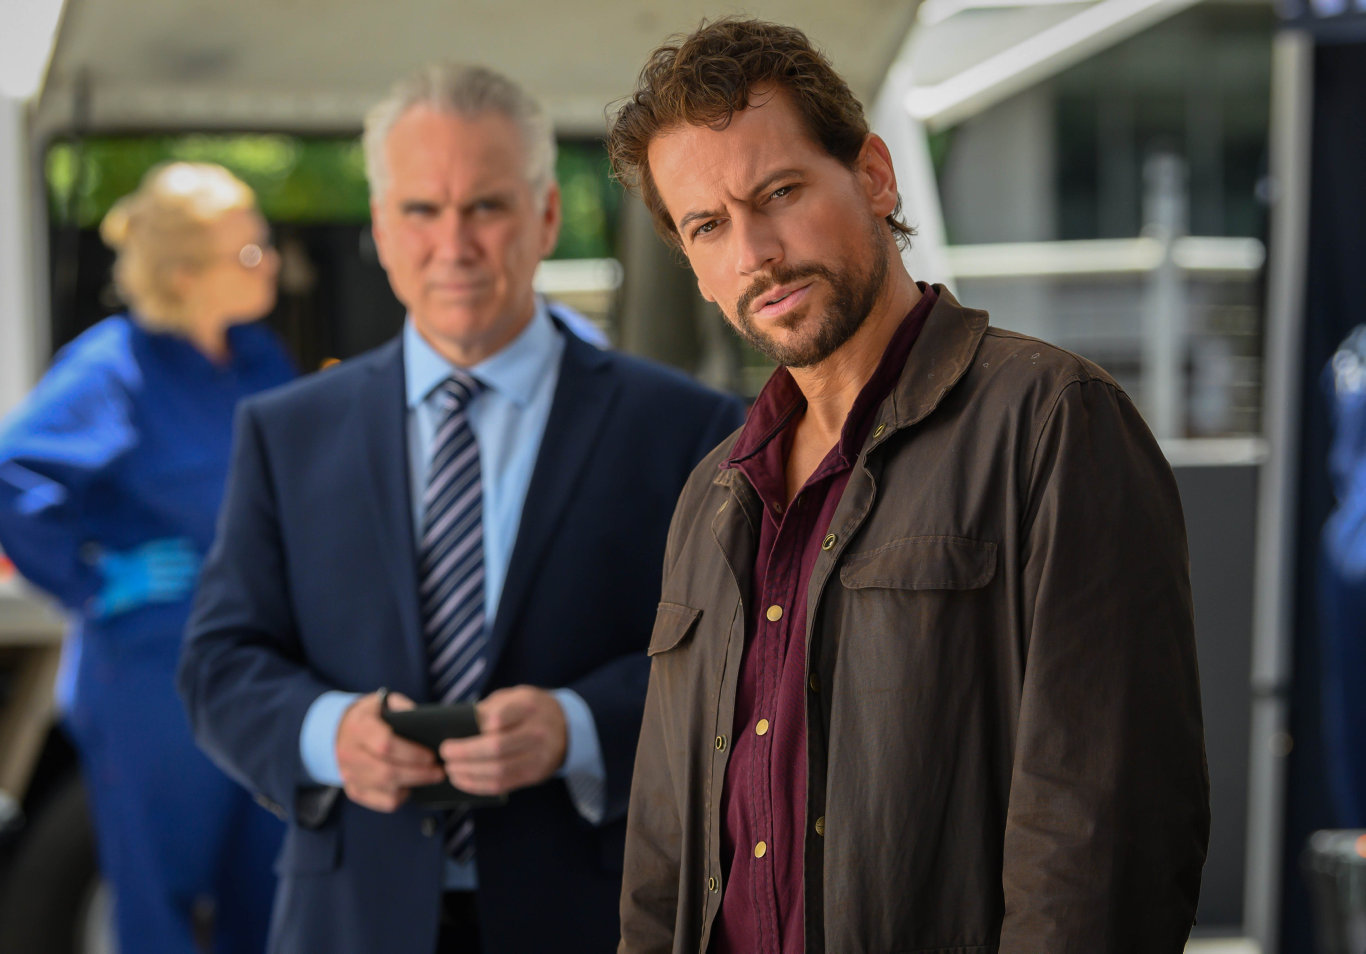 Damien Garvey and Ioan Gruffudd in a scene from season two of Harrow.